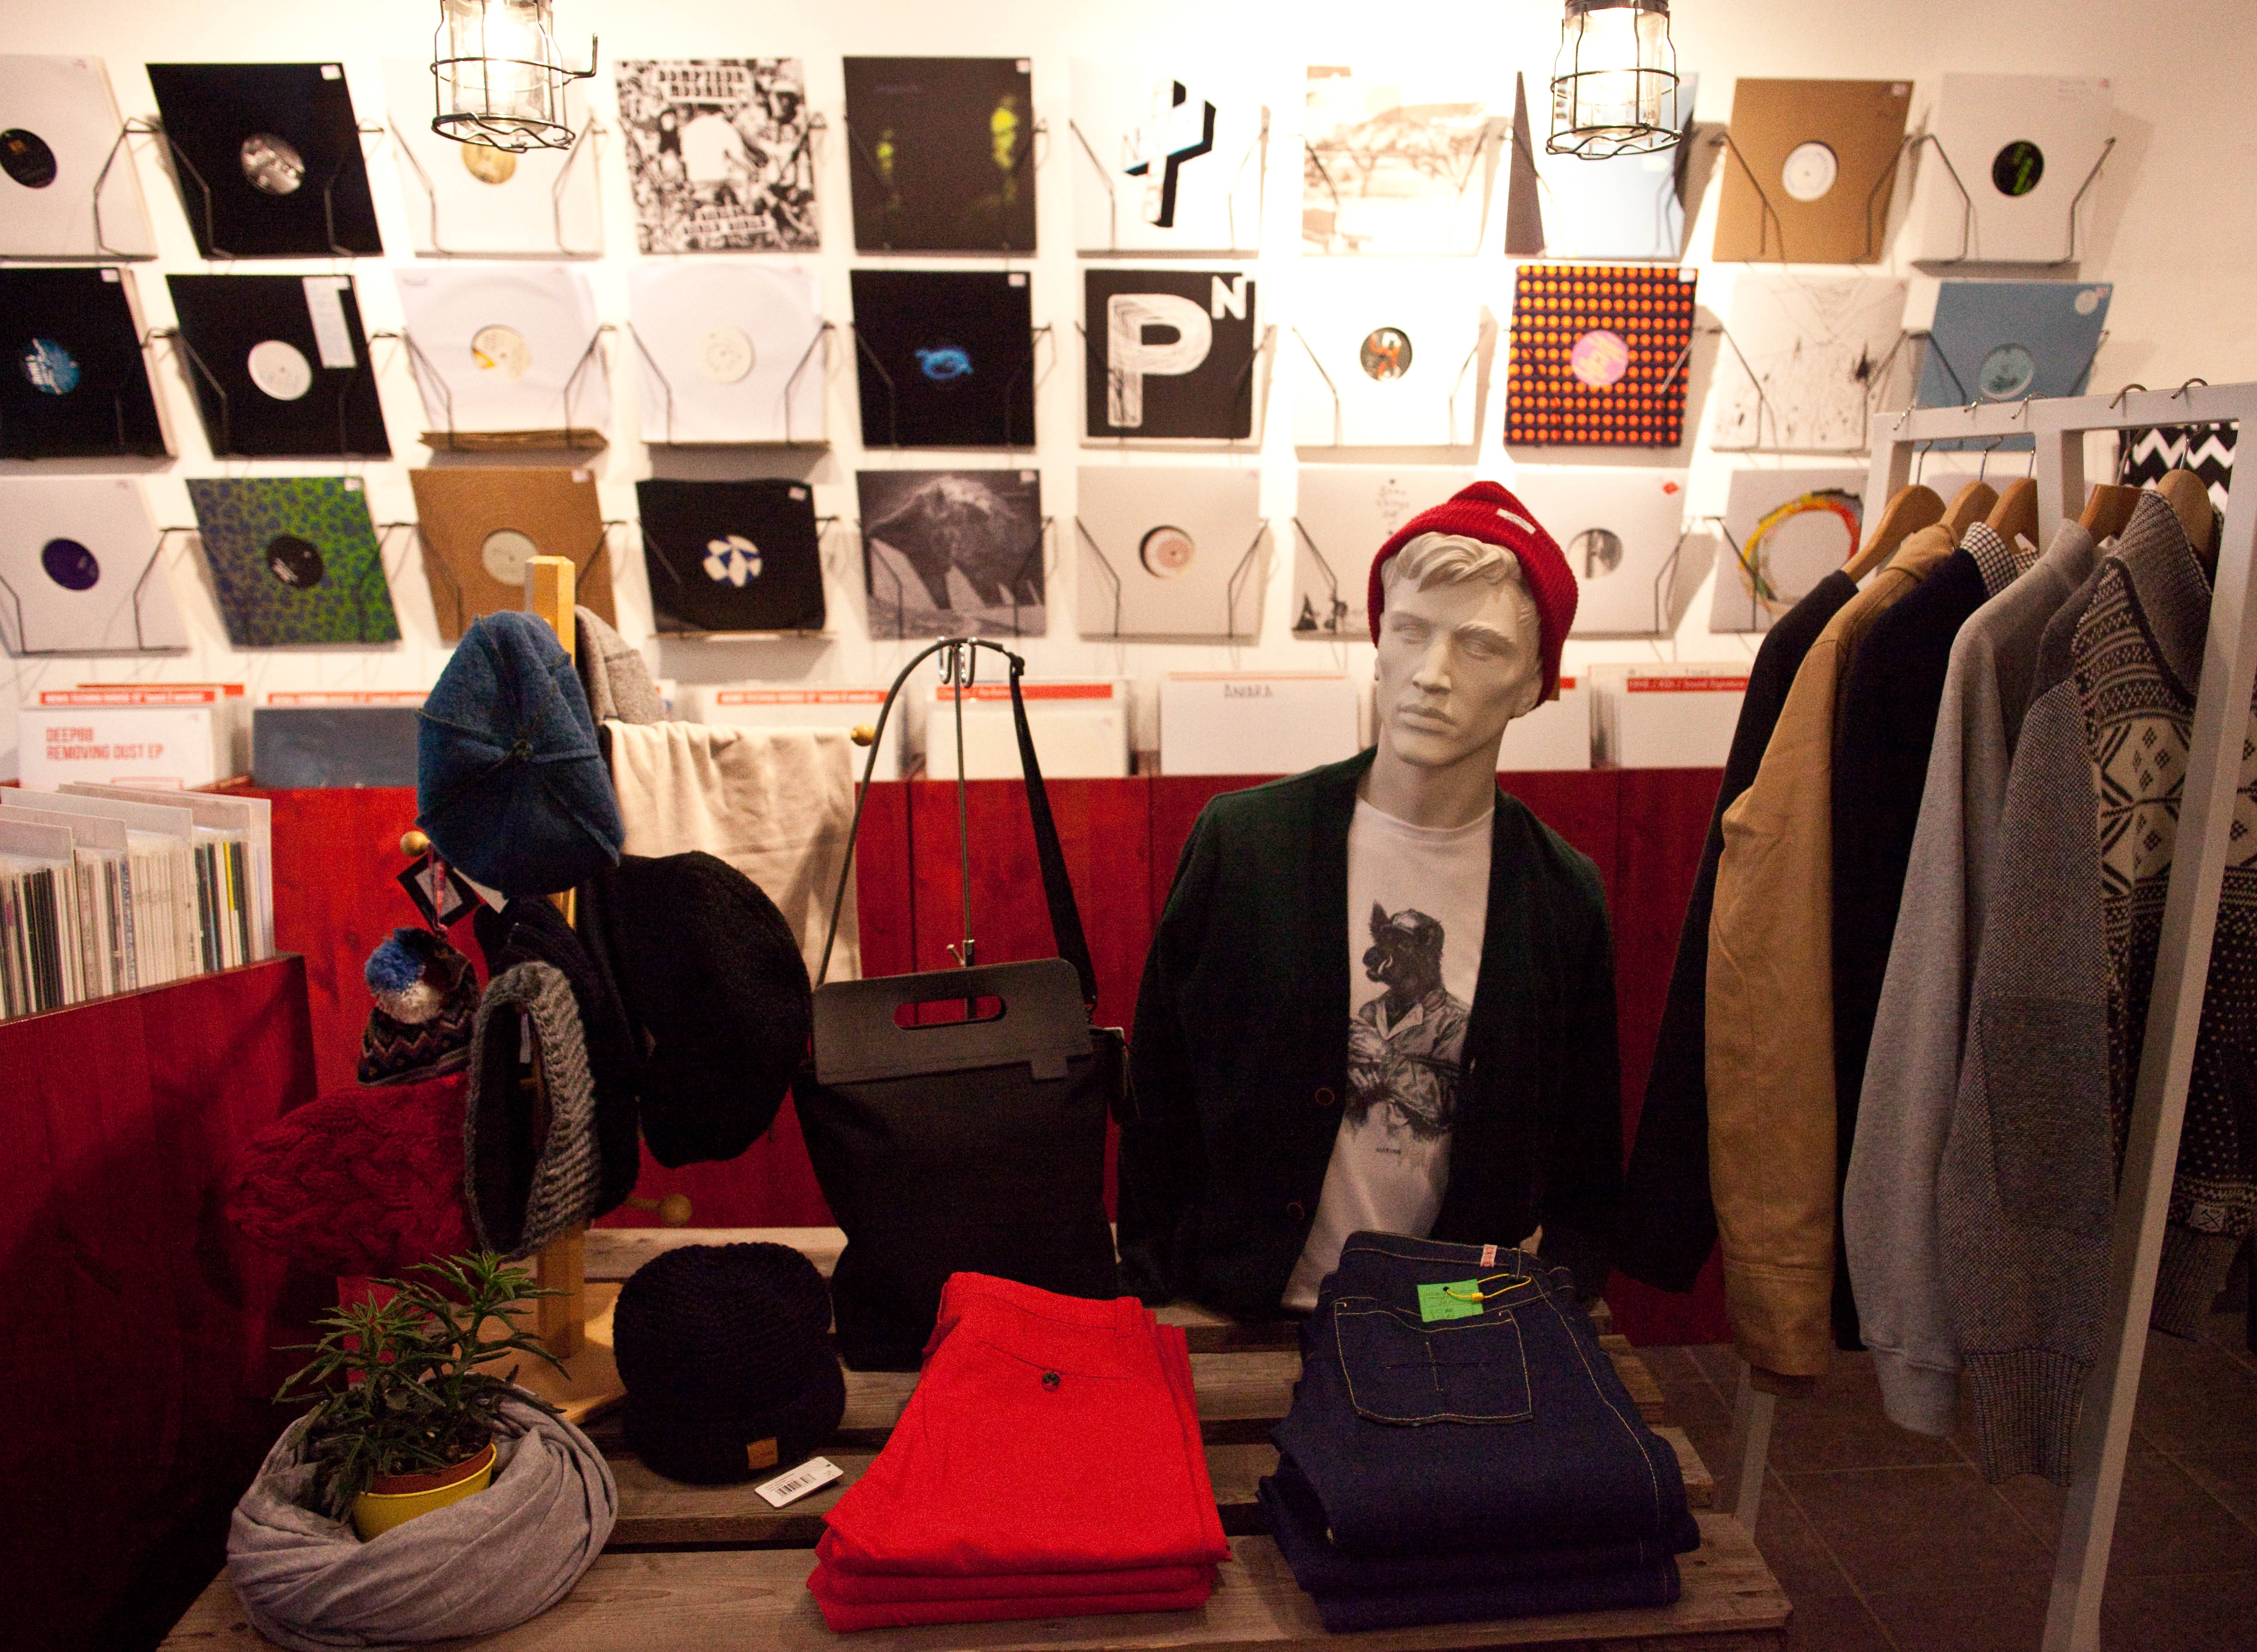 Rotation Berlin - Records & Clothes